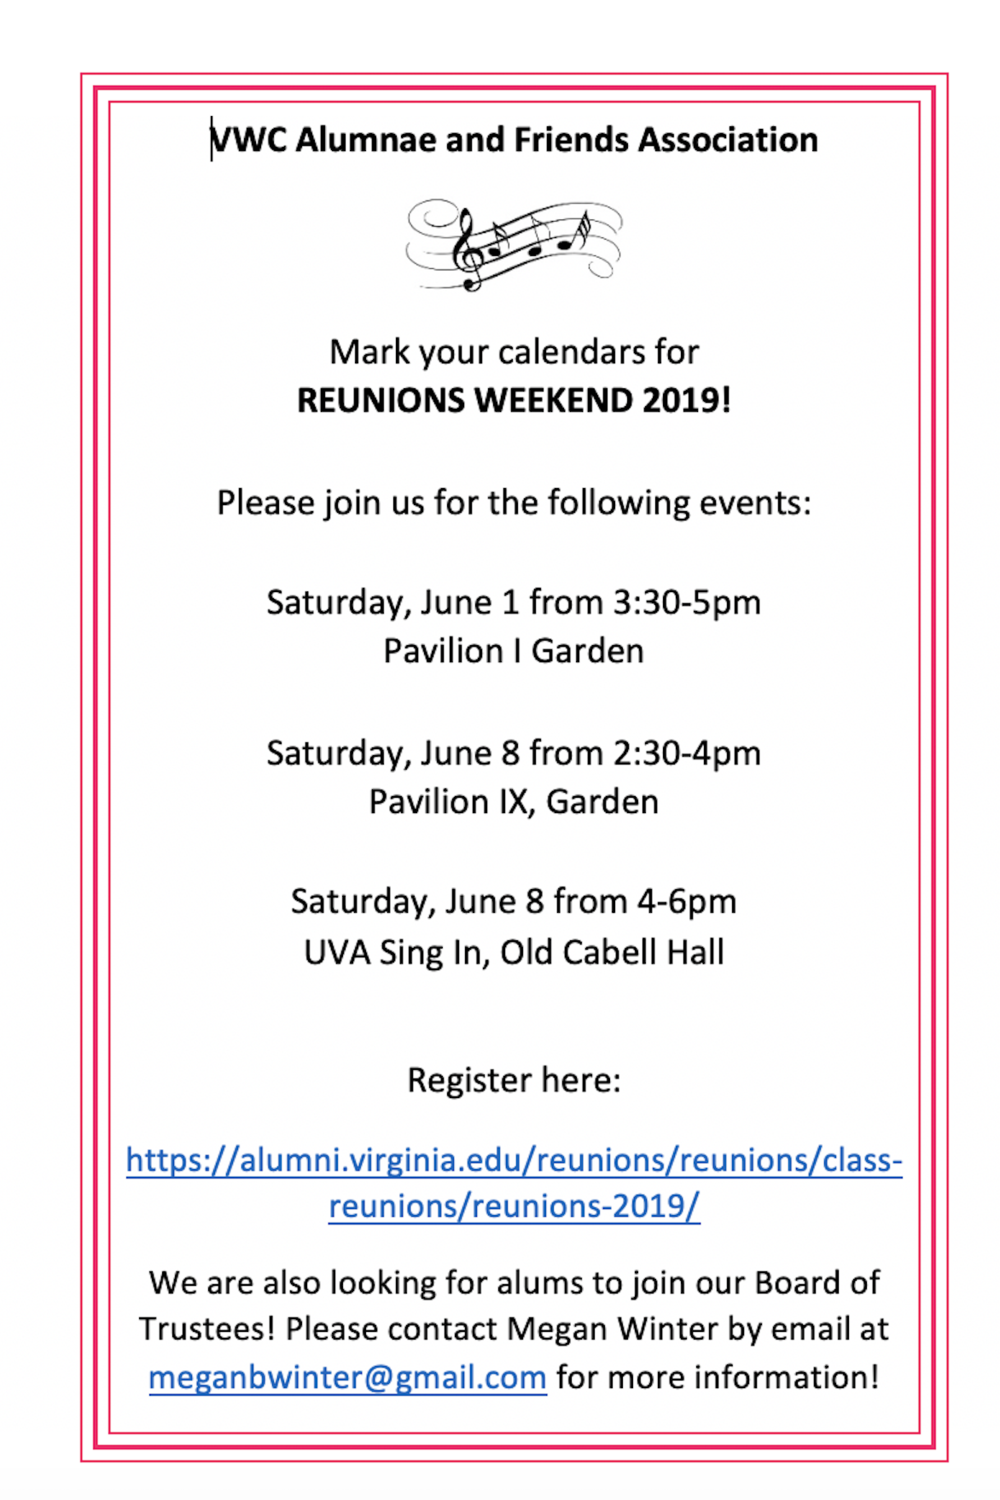 Image of an invitation to Reunions Weekend 2019. Register at alumni.virginia.edu/reunions/reunions/class-reunions/reunions-2019 which is the official UVA site for class reunions. In addition, if you are interested in joining the VWC Alumnae and Friends Association's Board of Trustees, please contact Megan Winter at meganbwinter@gmail.com